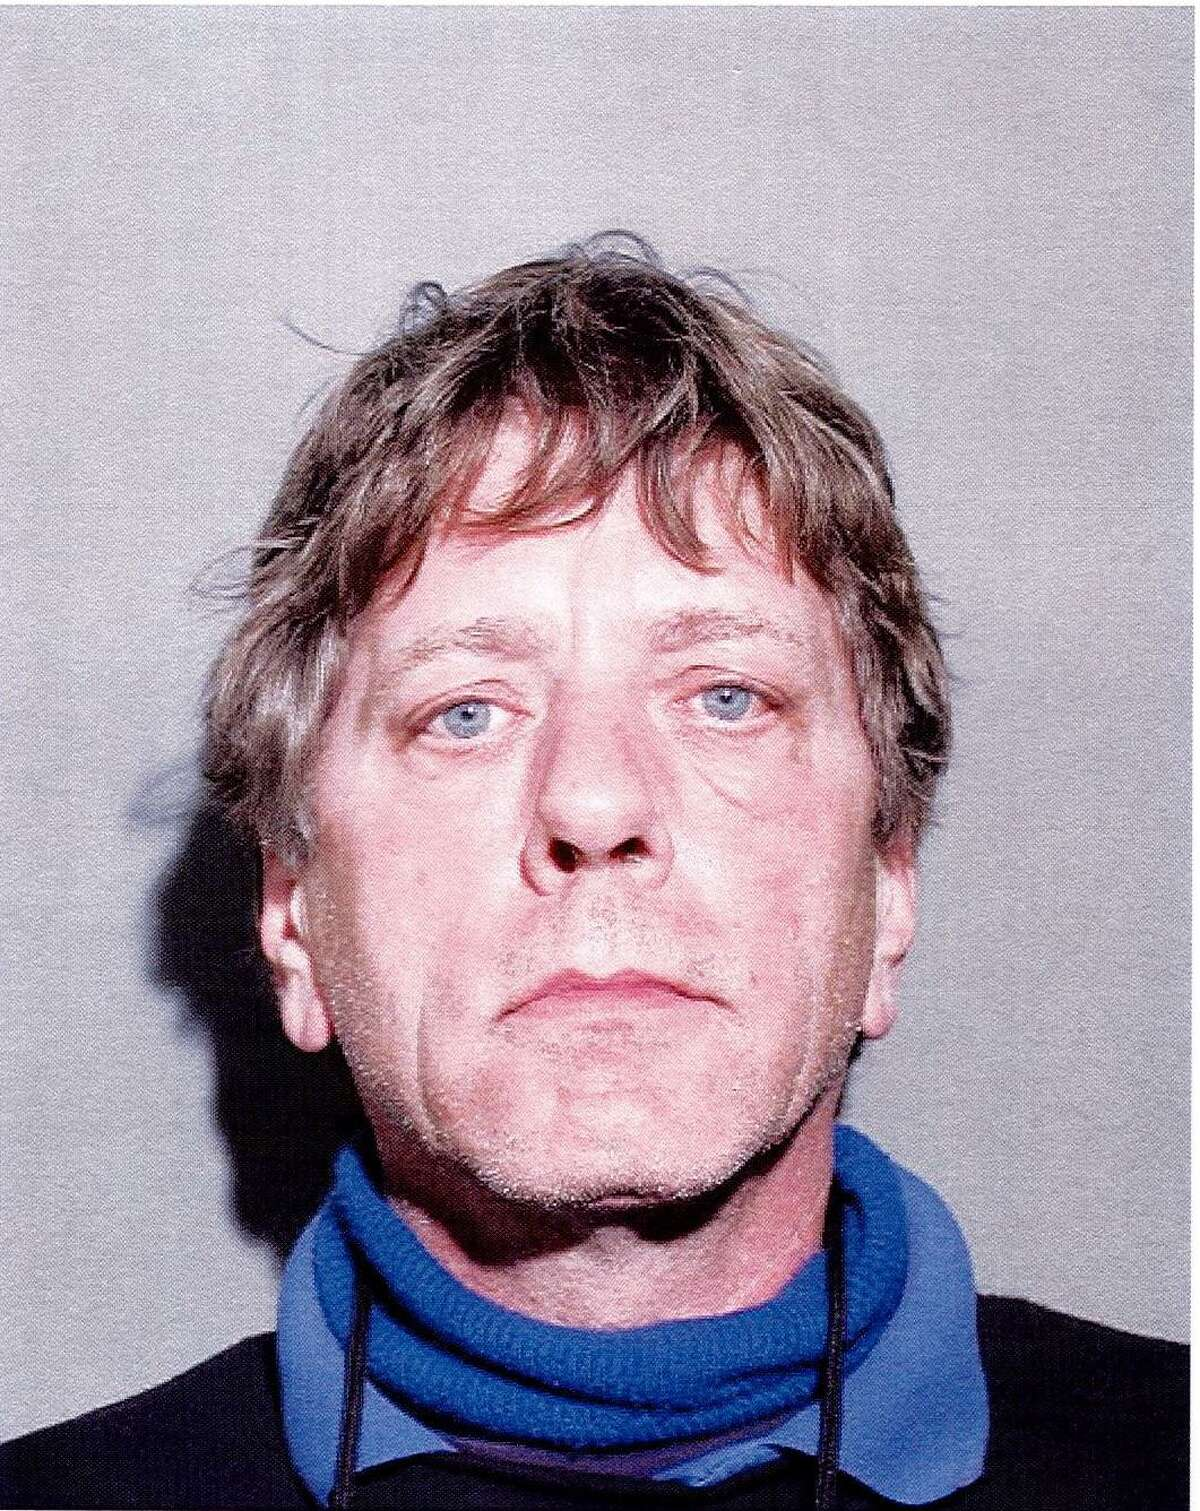 Mark Lynch, 57, of New Canaan, turned himself to police on Nov. 21, on manslaughter charges. Lynch is accused of providing the heroin that led to his son's fatal overdose.